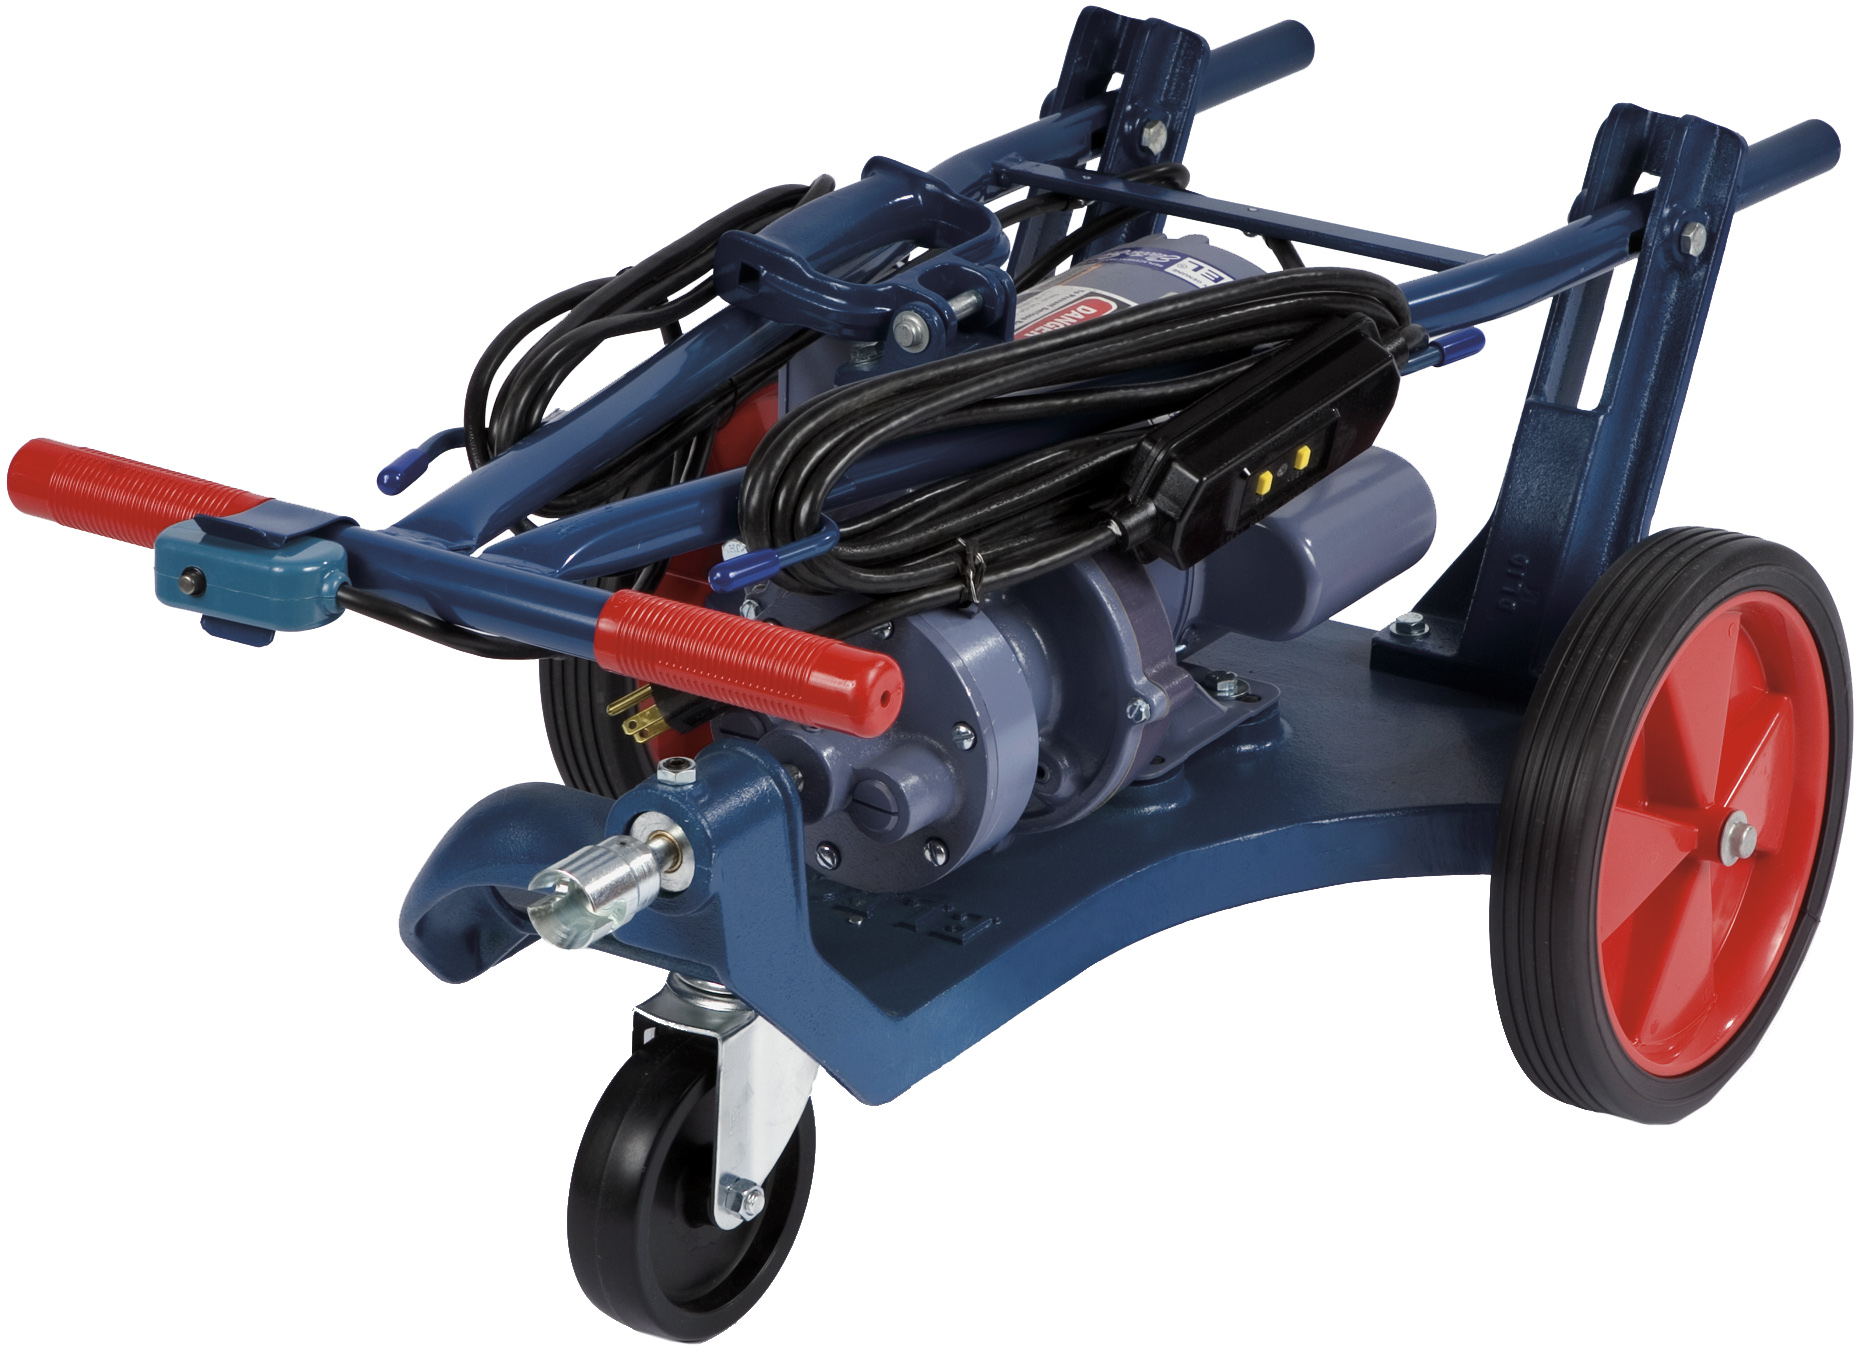 Model C Sewer Cleaner Electric Eel